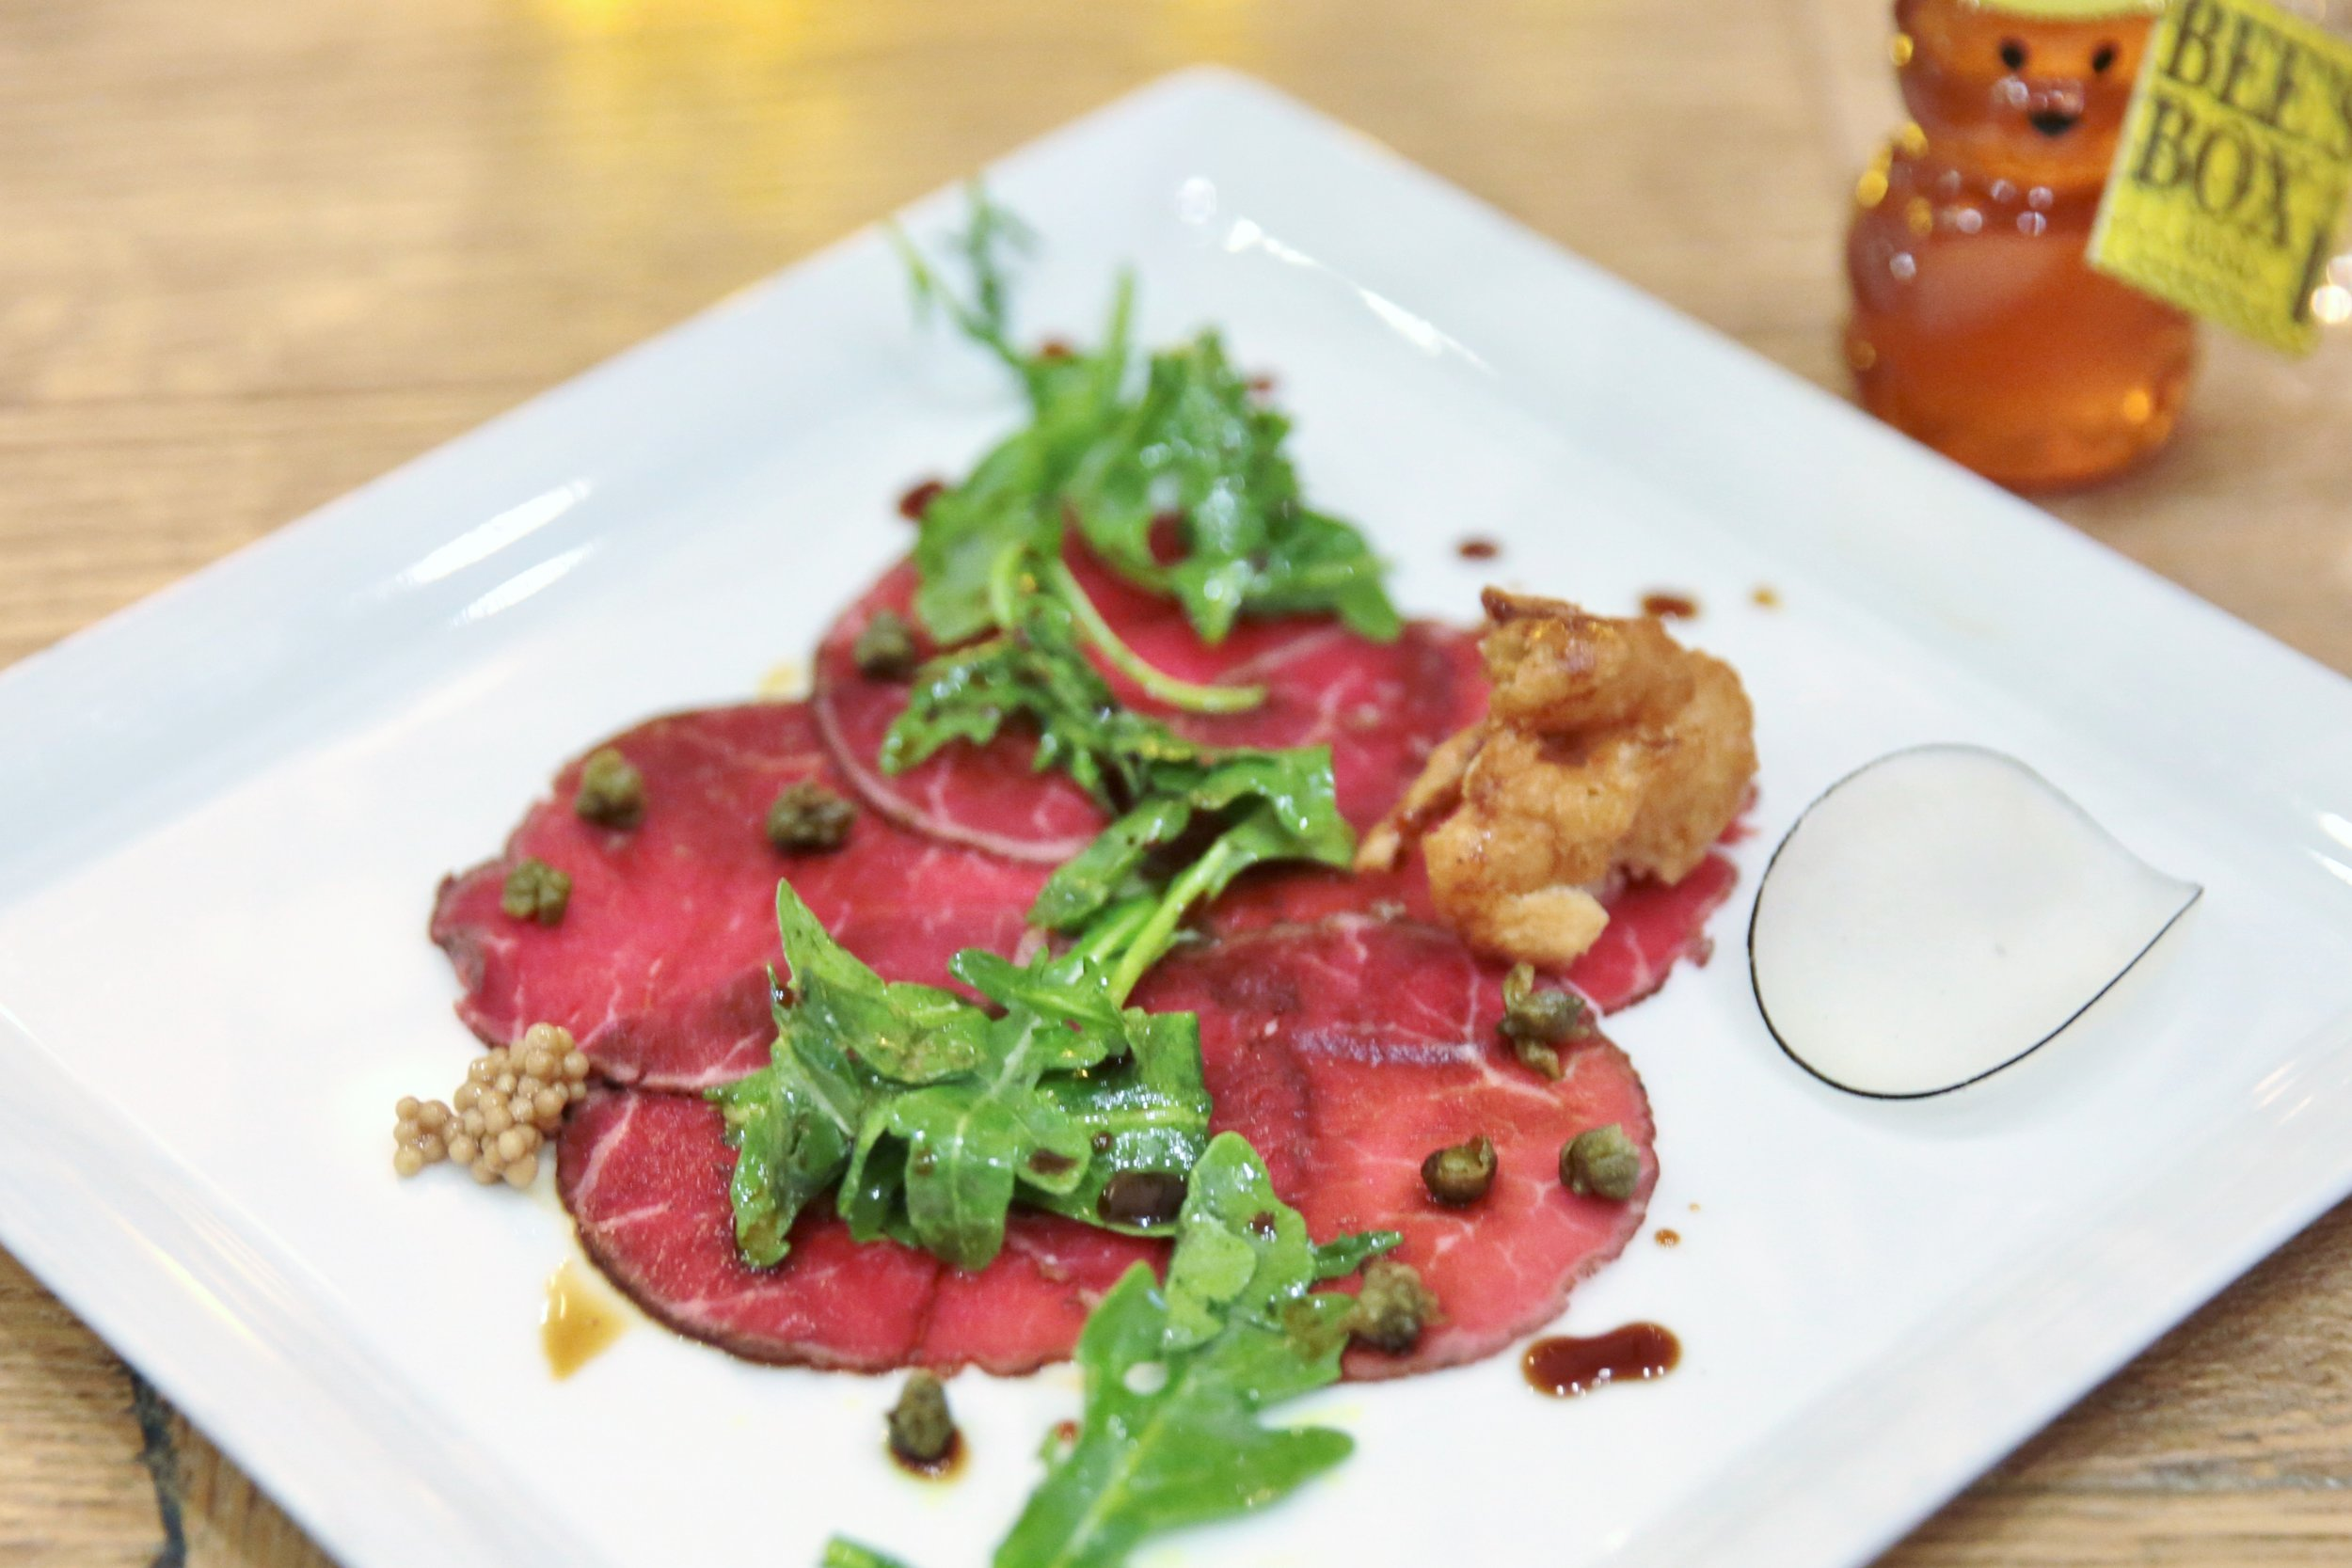 Fourtth course: Arizona Grass-Fed Beef Carpaccio. Lemon, Arugula, and Caramelized Onion Fritter